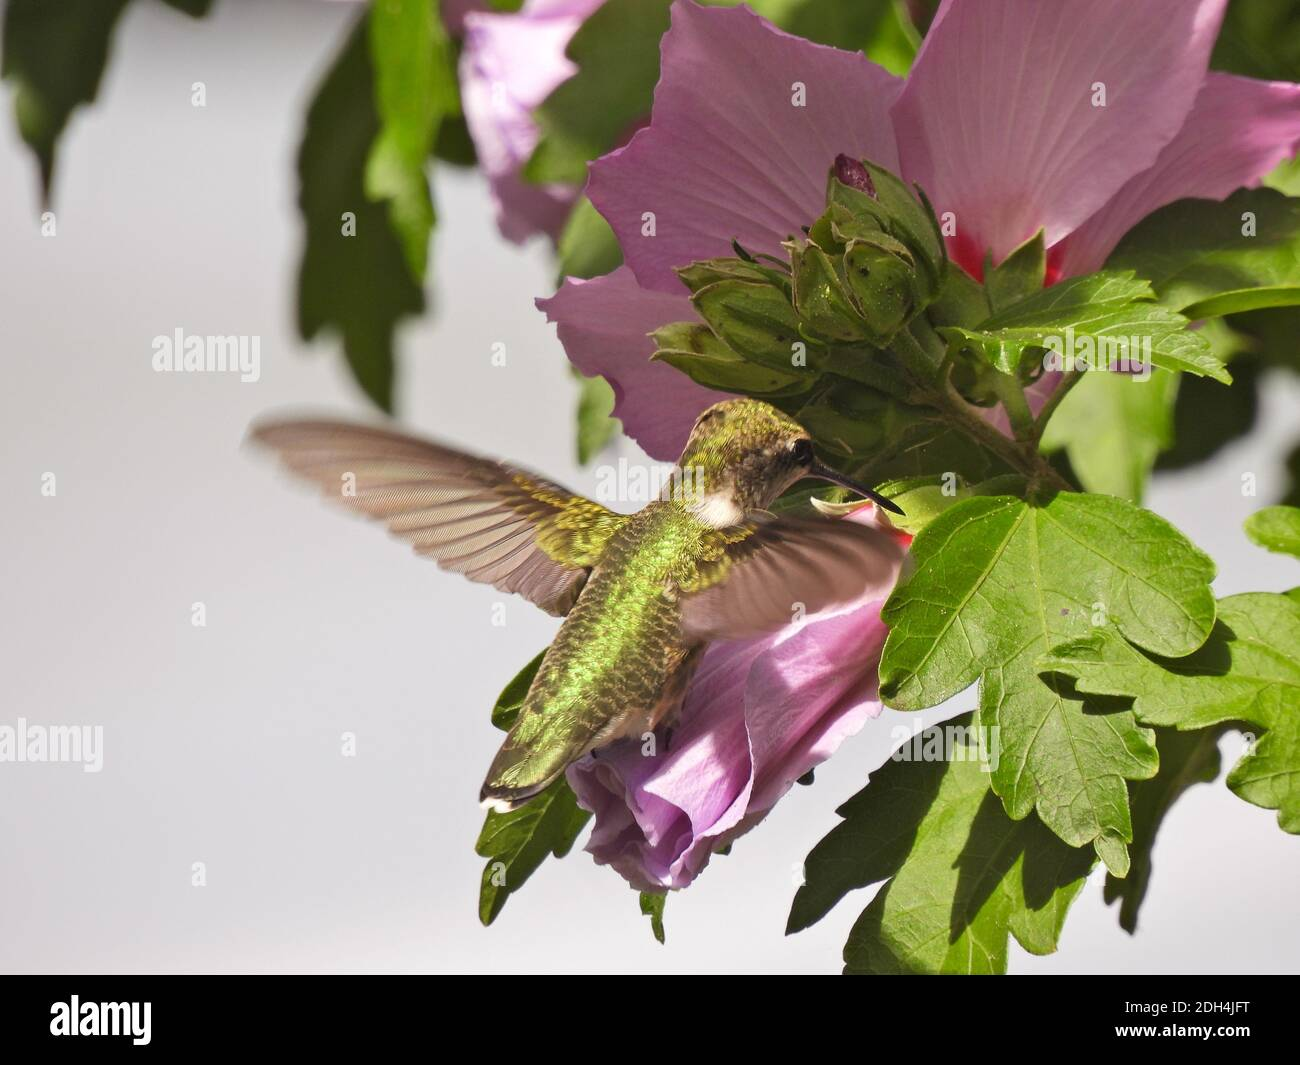 Ruby-Throated Hummingbird in Flight Gathering Nectar from Rose of Sharon Flower Bloom Stock Photo